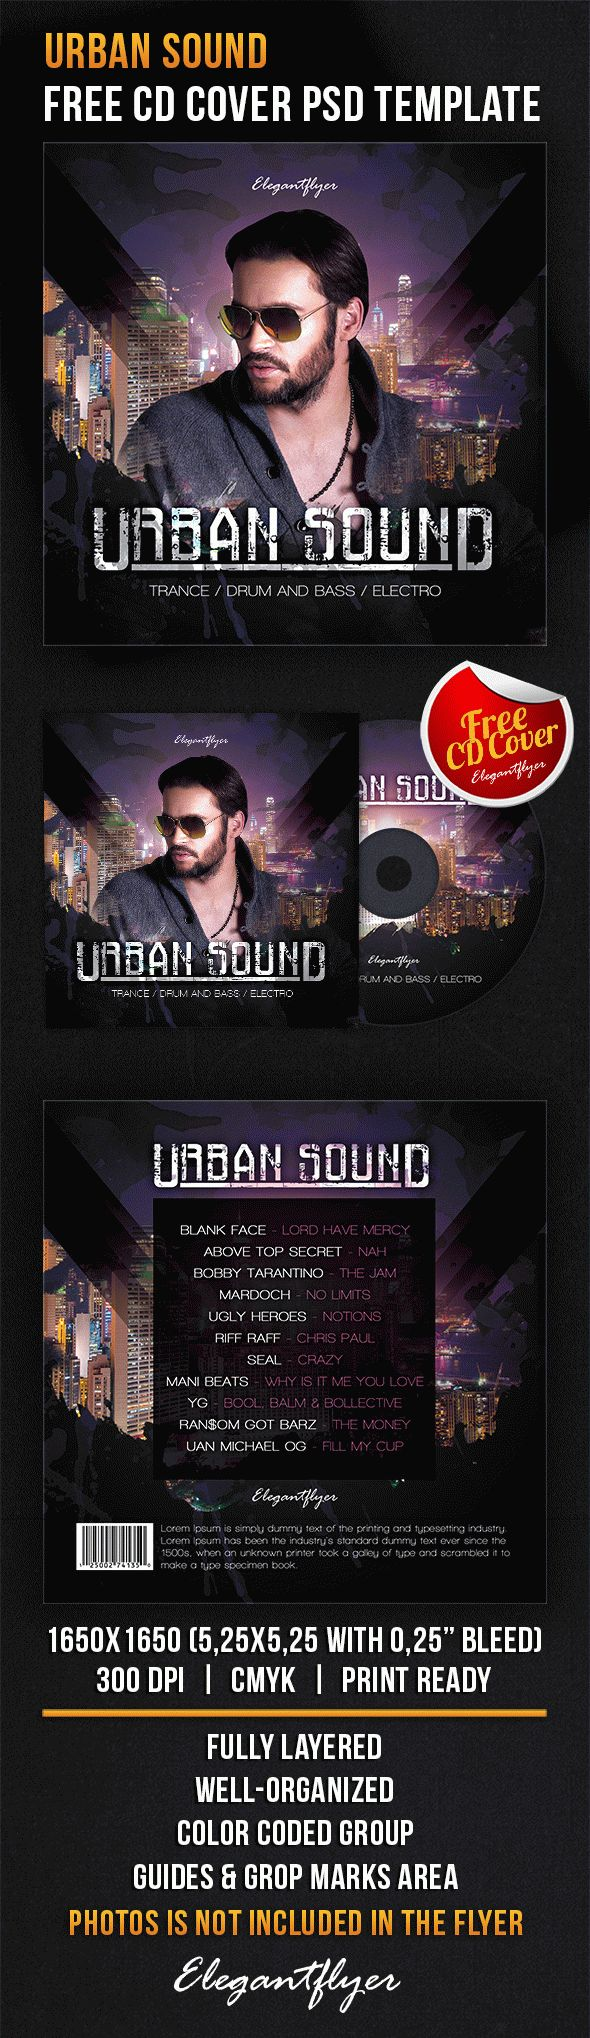 Urban Sound – Free CD Cover PSD Template